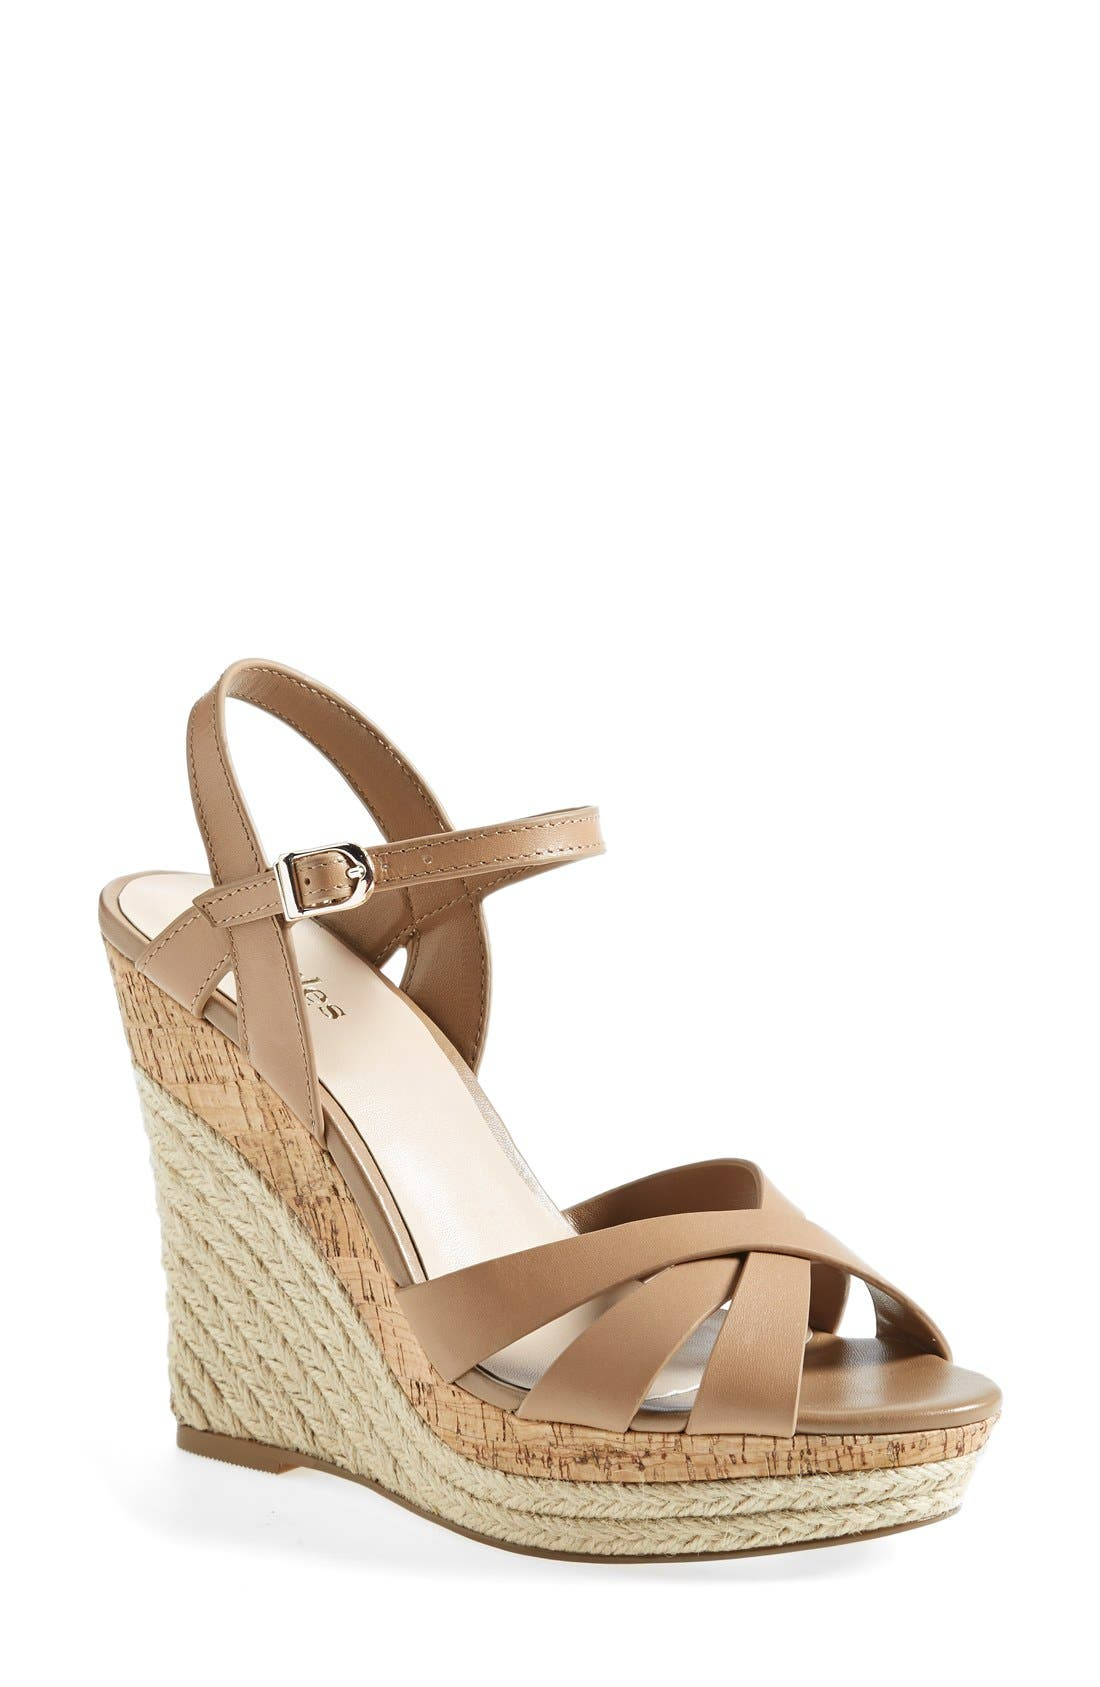 Alternate Image 1 Selected - Charles by Charles David 'Astro' Espadrille Sandal (Women)